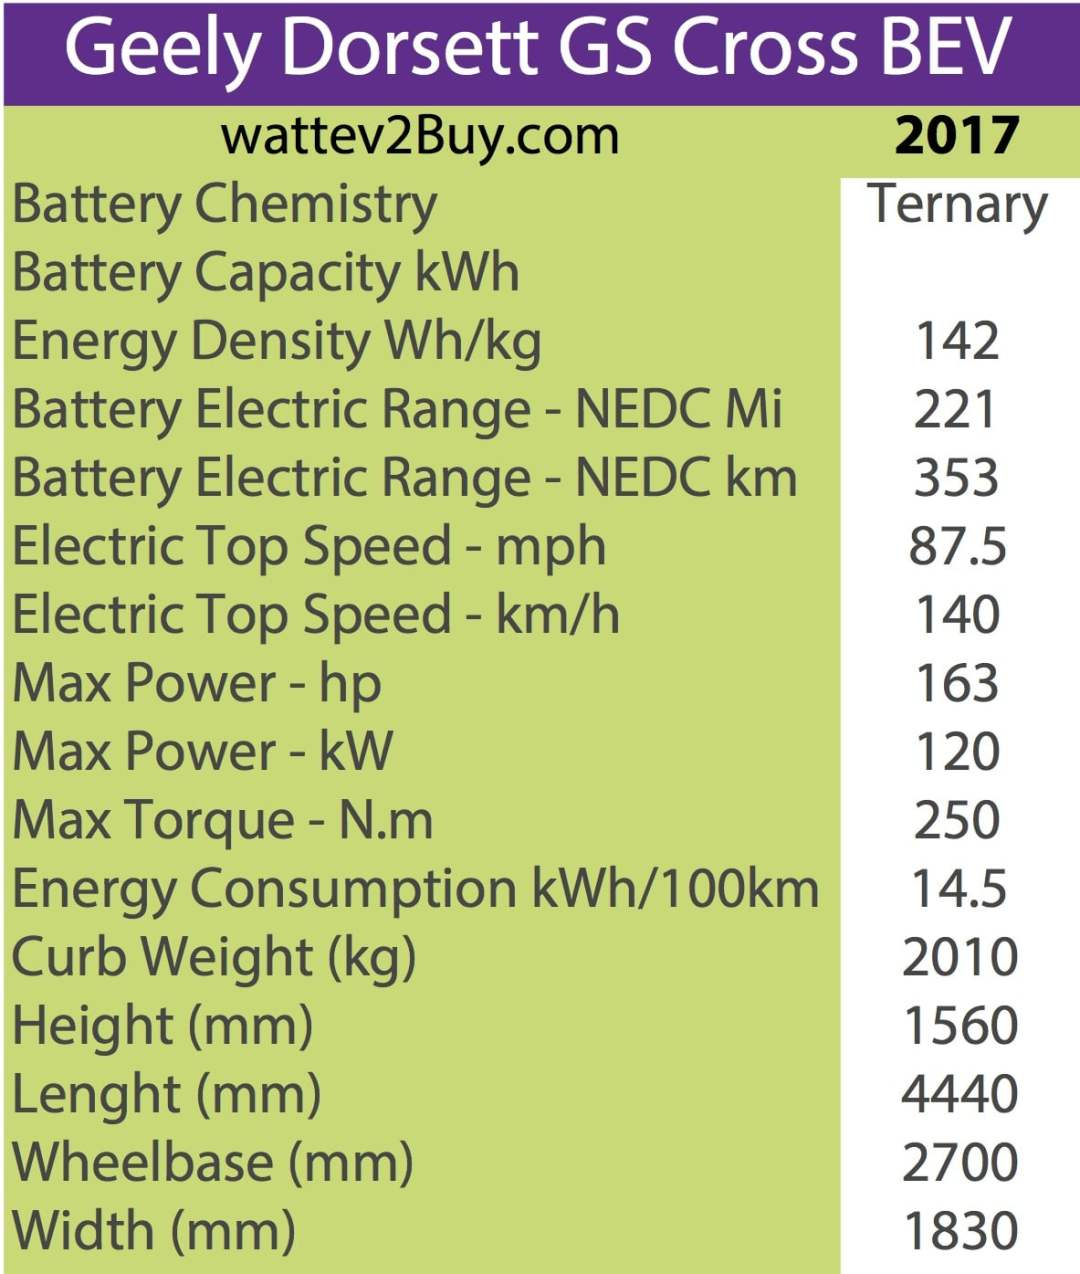 Geely Dorsett GS Cross BEVSpecs wattev2Buy.com2017 Battery ChemistryTernary Battery Capacity kWh Battery Nominal rating kWh Voltage V Amps Ah Cells Modules Weight (kg) Cell Type SOC Cooling Cycles Battery Type Depth of Discharge (DOD) Energy Density Wh/kg142.07 Battery Manufacturer Battery Warranty - years Battery Warranty - km Battery Warranty - miles Battery Electric Range - at constant 38mph Battery Electric Range - at constant 60km/h Battery Electric Range - NEDC Mi220.625 Battery Electric Range - NEDC km353 Battery Electric Range - CCM Mi Battery Electric Range - CCM km Battery Electric Range - EPA Mi Battery Electric Range - EPA km Electric Top Speed - mph87.5 Electric Top Speed - km/h140 Acceleration 0 - 100km/h sec Acceleration 0 - 50km/h sec Acceleration 0 - 62mph sec Acceleration 0 - 60mph sec Acceleration 0 - 37.2mph sec Wireless Charging Direct Current Fast Charge kW Charger Efficiency Onboard Charger kW Charging Cord - amps Charging Cord - volts LV 1 Charge kW LV 1 Charge Time (Hours) LV 2 Charge kW LV 2 Charge Time (Hours) LV 3 CCS/Combo kW LV 3 Charge Time (min to 70%) LV 3 Charge Time (min to 80%) LV 3 Charge Time (mi) LV 3 Charge Time (km) Charging System kW Charger Output Charge Connector Power Outlet kW Power Outlet Amps MPGe Combined - miles MPGe Combined - km MPGe City - miles MPGe City - km MPGe Highway - miles MPGe Highway - km Max Power - hp163 Max Power - kW120 Max Torque - lb.ft Max Torque - N.m250 Drivetrain Generator Motor Type Electric Motor Output kW Electric Motor Output hp Transmission Electric Motor - Front FWD Max Power - hp FWD Max Power - kW FWD Max Torque - lb.ft FWD Max Torque - N.m Electric Motor - Rear RWD Max Power - hp RWD Max Power - kW RWD Max Torque - lb.ft RWD Max Torque - N.m Energy Consumption kWh/100km14.53 Energy Consumption kWh/100miles Deposit GB Battery Lease per month EU Battery Lease per month MSRP (expected) EU MSRP (before incentives & destination) GB MSRP (before incentives & destination) US MSRP (before ince